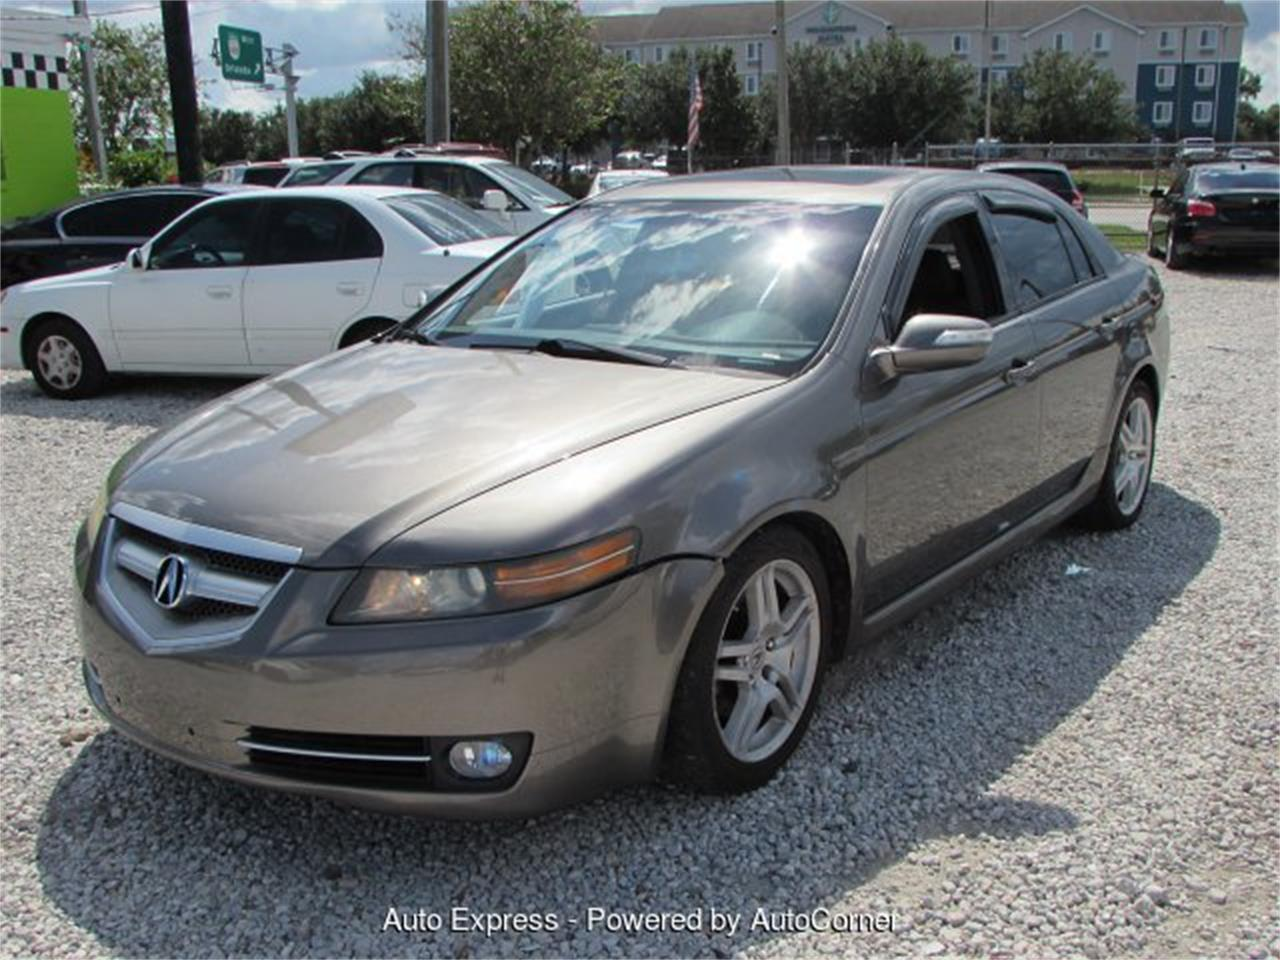 Acura TL For Sale ClassicCarscom CC - Acura tl 08 for sale